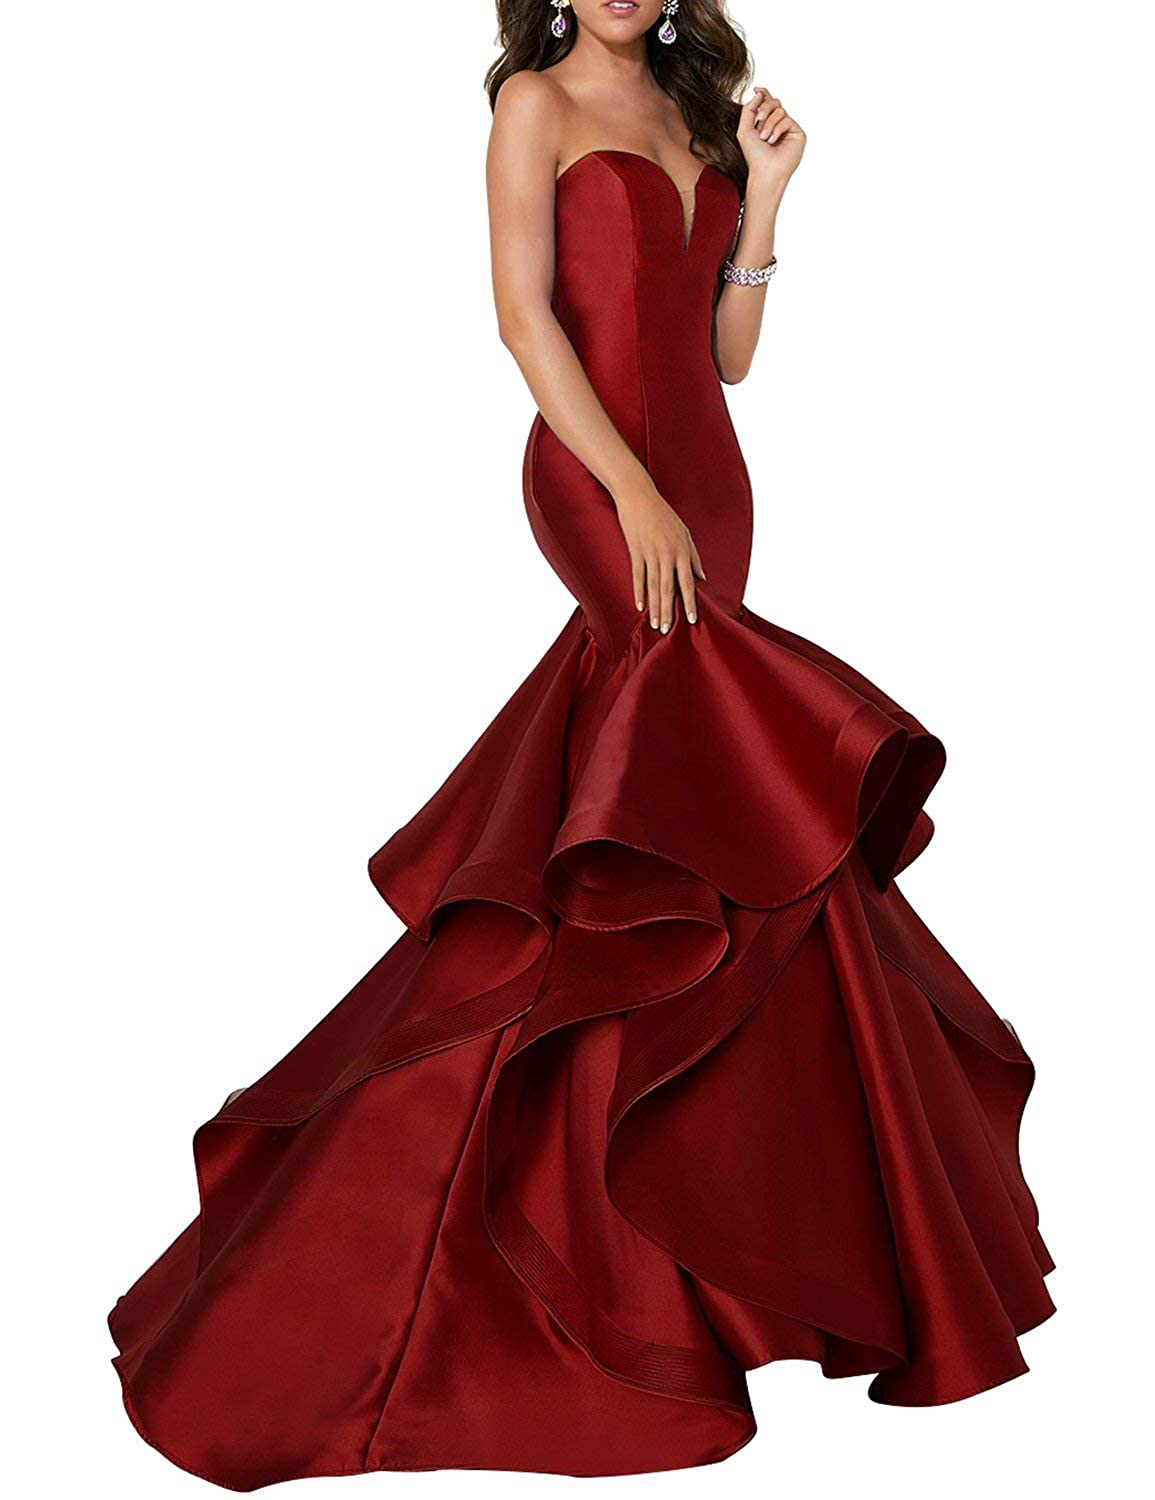 Burgundy Scarisee Women's Sweetheart Mermaid Prom Evening Party Dresses Tiered FormalSA51